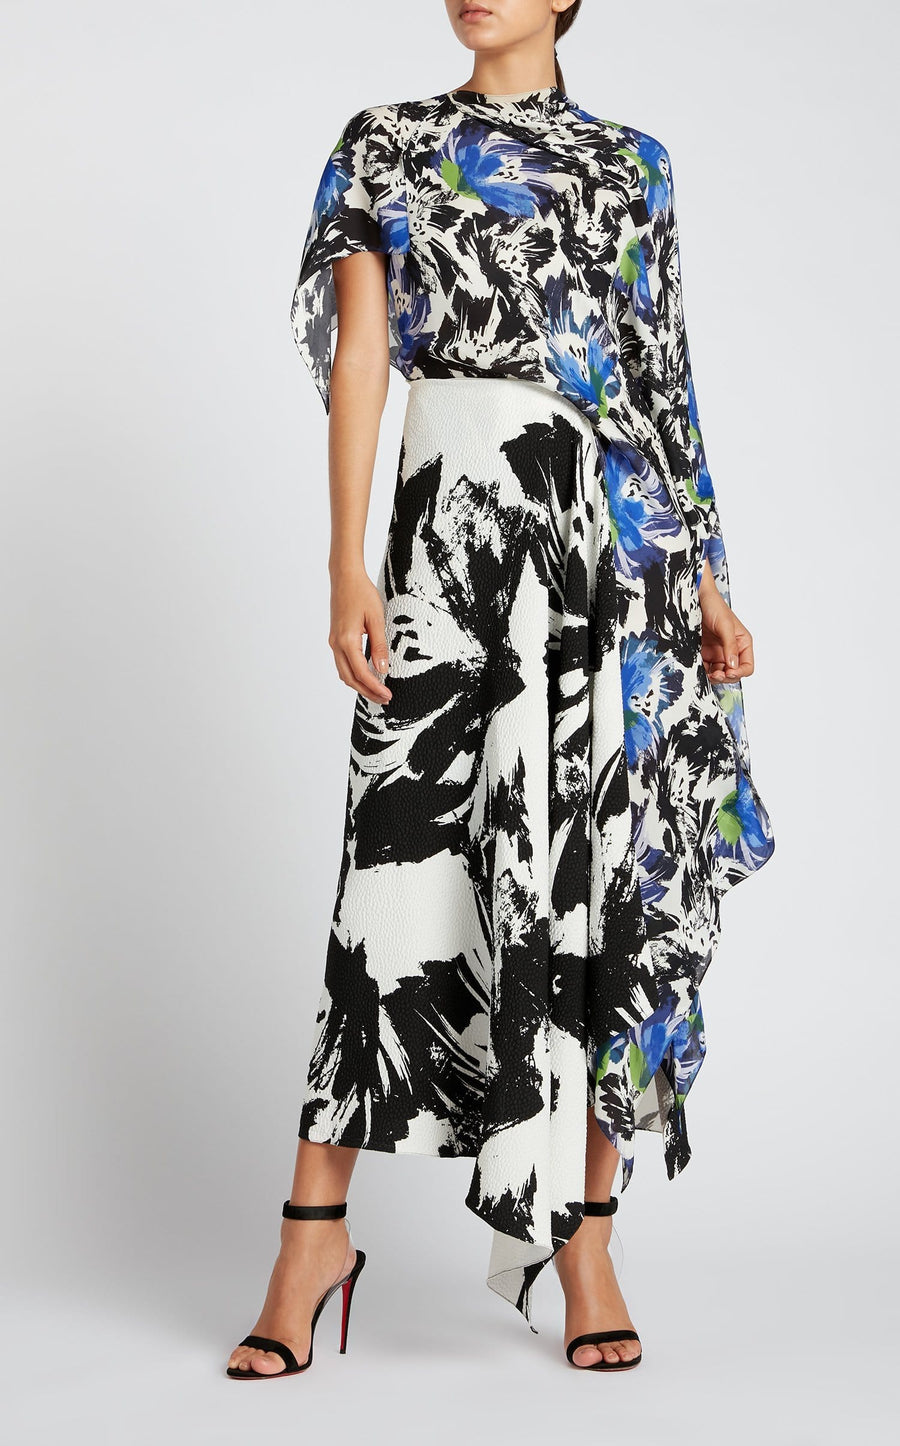 Calhern Dress